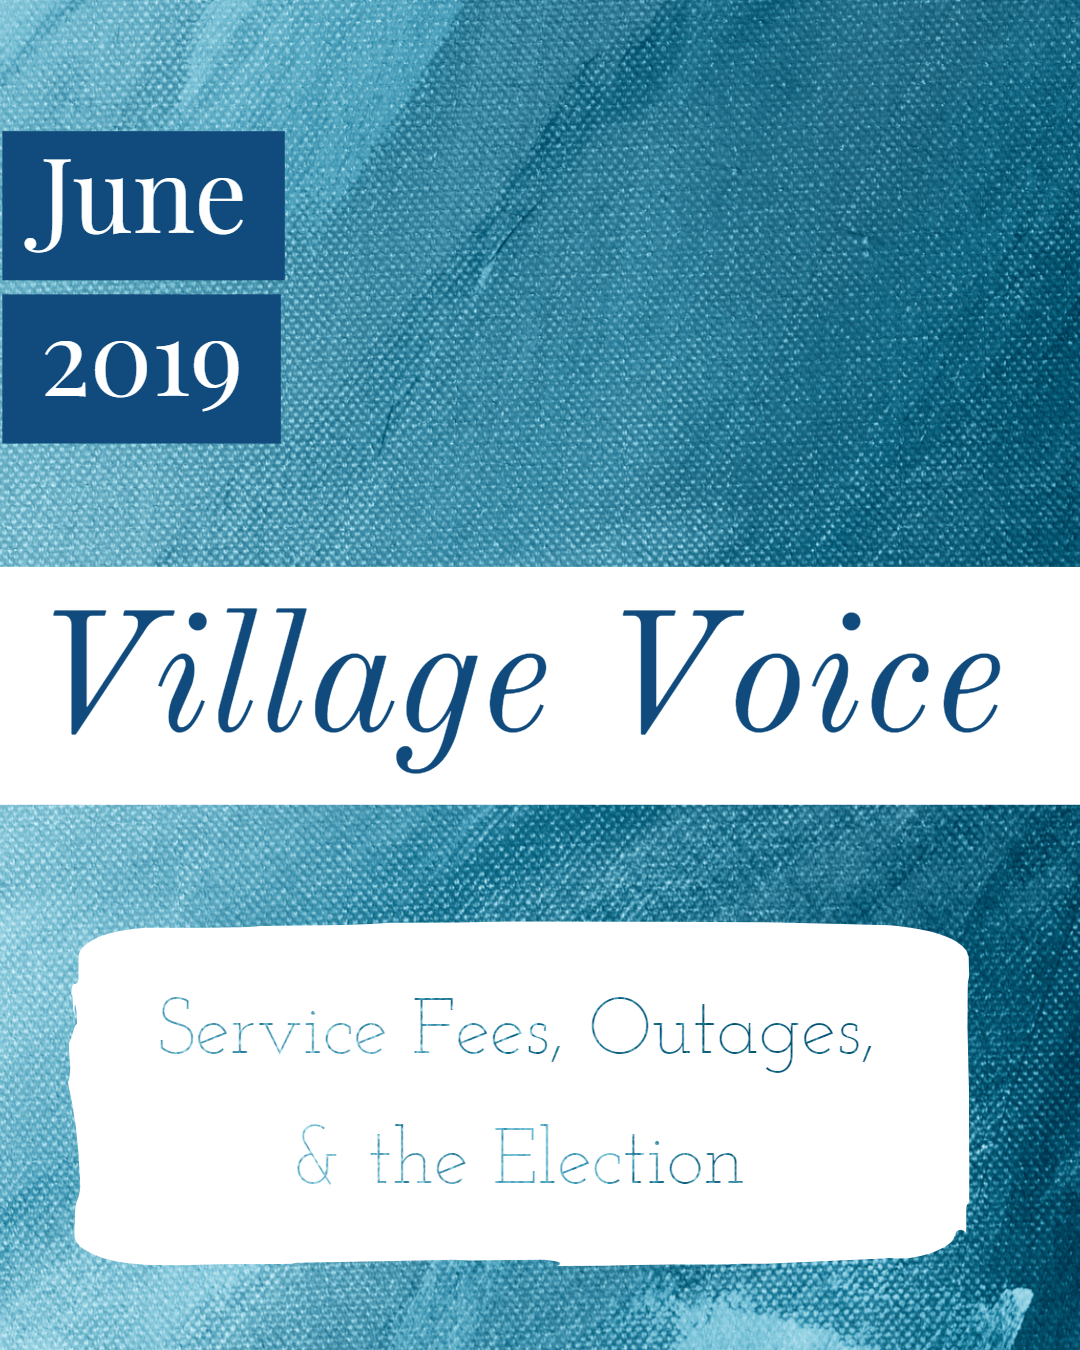 Village Voice: June 2019